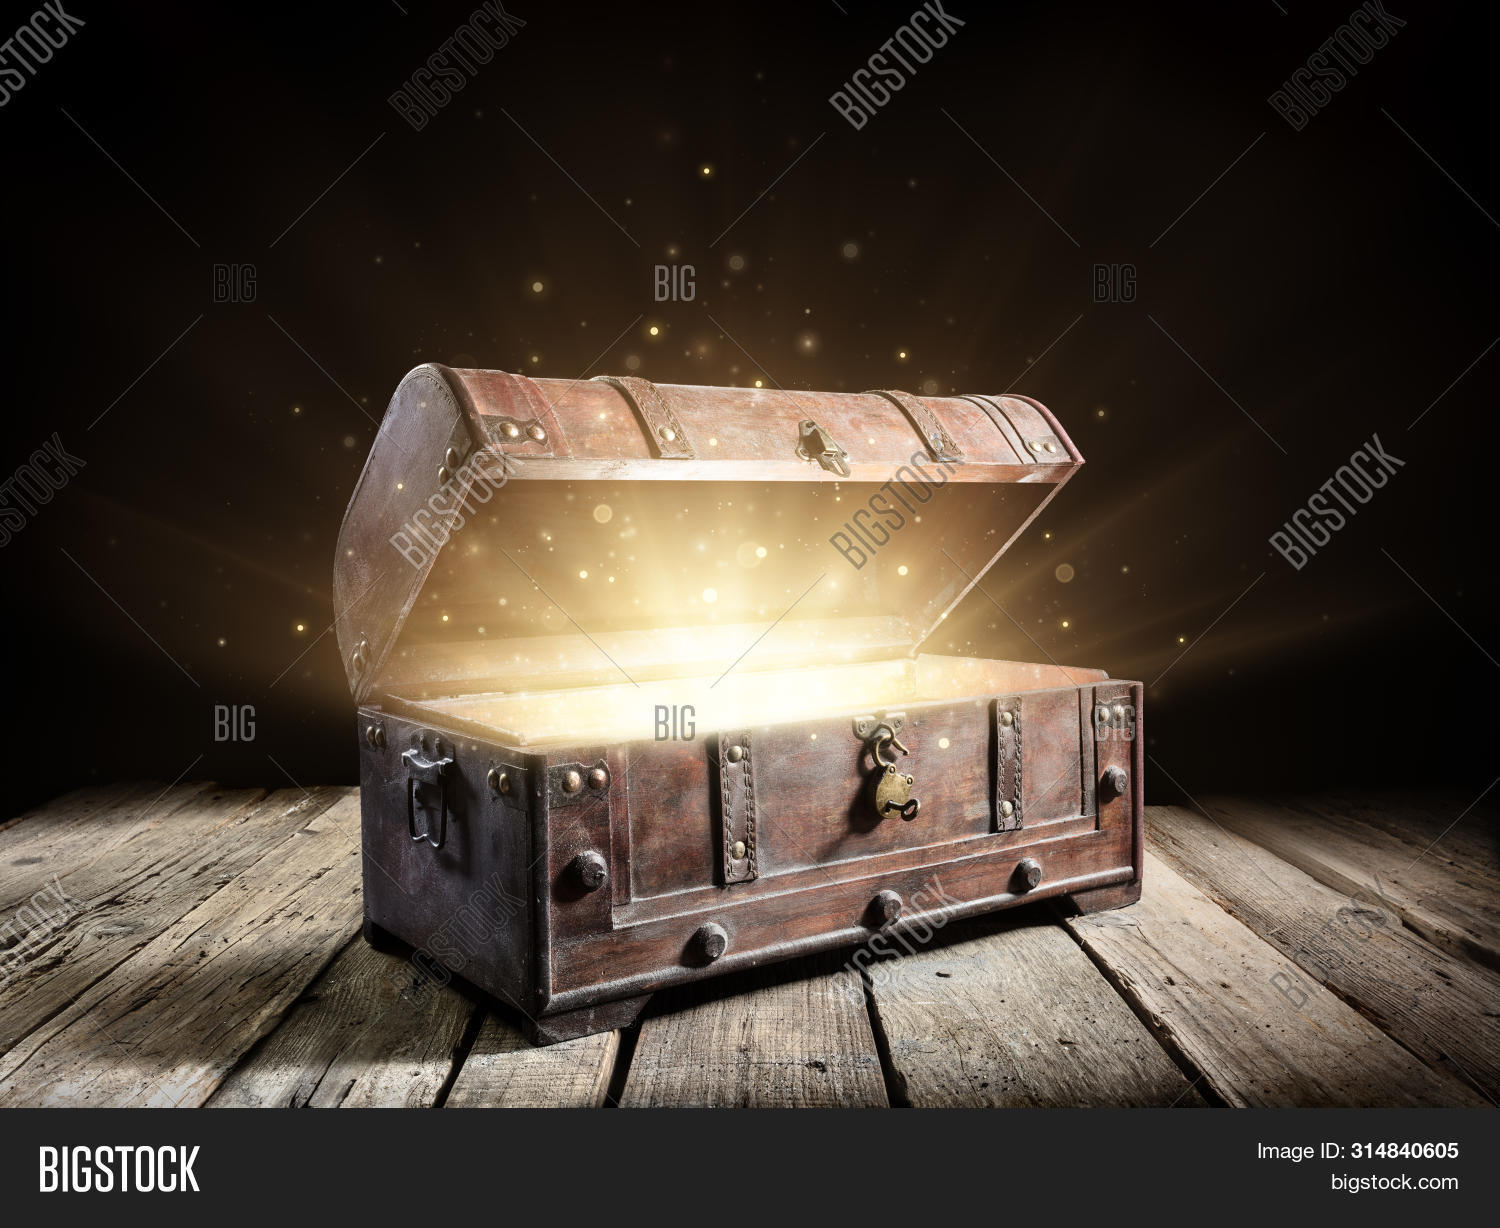 adventure,ancient,antique,background,black,box,chest,dark,fairy,fantasy,gift,glow,gold,history,light,magic,mysterious,mystery,old,open,pirate,retro,secret,surprise,treasure,trunk,vintage,wealth,wood,wooden